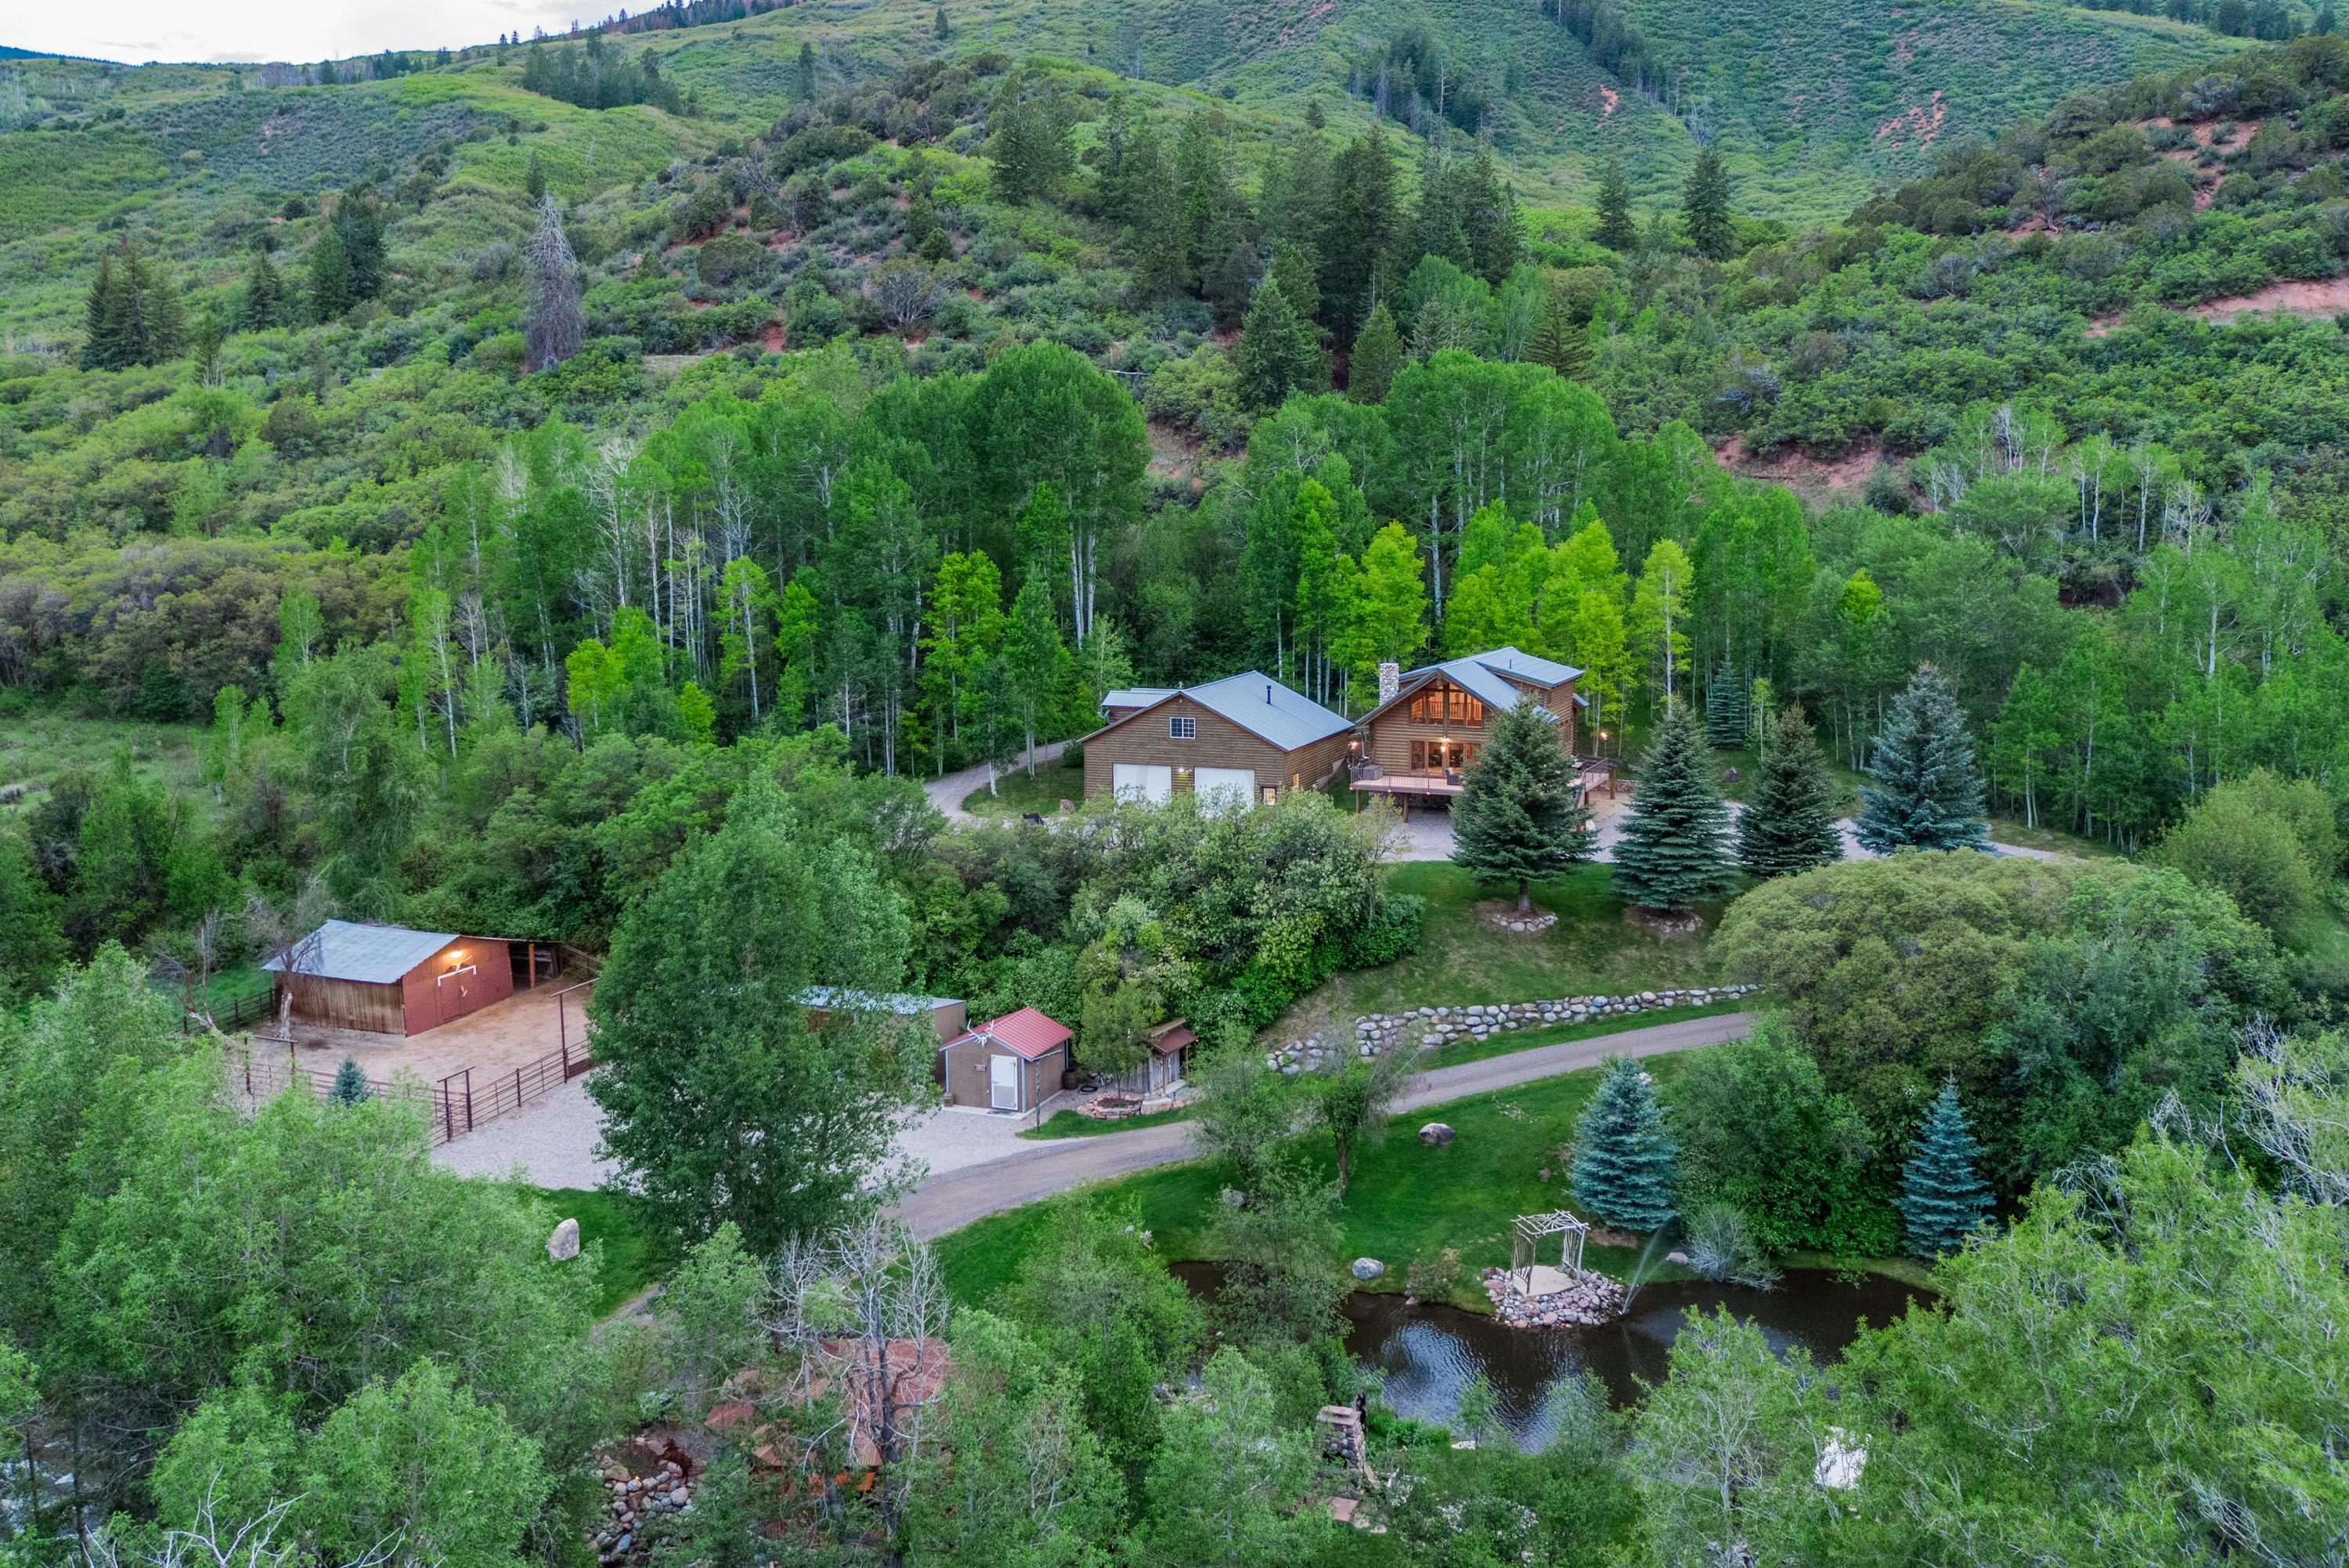 Enjoy this slice of Colorado heaven in Eagle, Colorado privately located on the Brush Creek River. Live the ranch lifestyle on 7.7 acres with nearly 350 feet of creek frontage, a serene pond and a spring with incredible water quality to use for drinking, ponds and irrigation.  Enjoy true Colorado living that is only about 1 mile from country club amenities at the Frost Creek Country Club.  Take in rounds of golf at one of the most beautiful private golf courses in the world, enjoy a day at the spa, or sit by the pool, play tennis with family and friends.  Get into the more rugged fun and fly fish on your own land, four wheel or snowmobile off property down the road to National Forest, fish or swim in the pond, tube down the creek...the options are endless.  Close and easy access to Forest Service and BLM. This property also has excellent hunting access and a walk in cooler. After a long day of fun, ride your golf cart or bikes to enjoy dinner at the club restaurant or to have cocktails on the patio.  Better yet, return to your ranch to have drinks by the creek gazebo.  This land is truly special.  It is a place where your kids or grandkids get married kind of special.  Anyone recognizes that the moment they arrive.  The main house is a gorgeous log cabin.  The great room overlooks the beauty of the outdoors out to the expansive wrap around deck and a game room that would make a cowboy proud.  Seamlessly entertain from the indoors to outside on the deck.  Wind down the night by the outdoor fire pit and make s'mores with the kids and reminisce about the day telling stories.  This home is for people ready to truly live the good life.  This property has so many types of buyers it is hard to know what to describe. Go to mls.VailValleyRanch.com for many more details.